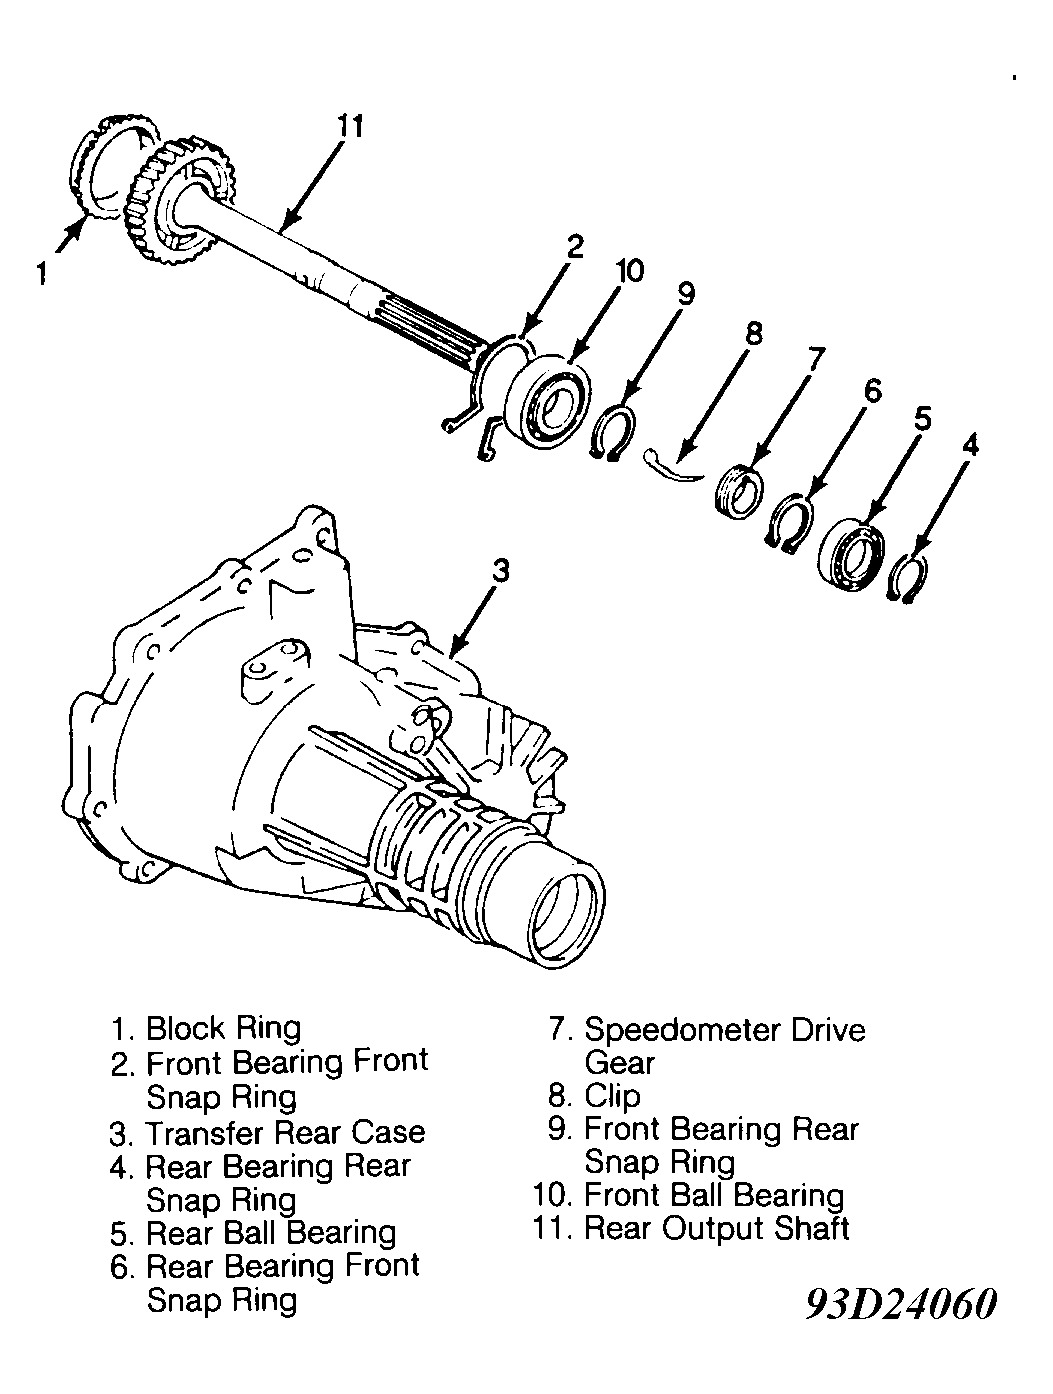 Isuzu Rodeo Transfer Case Will Not Engage